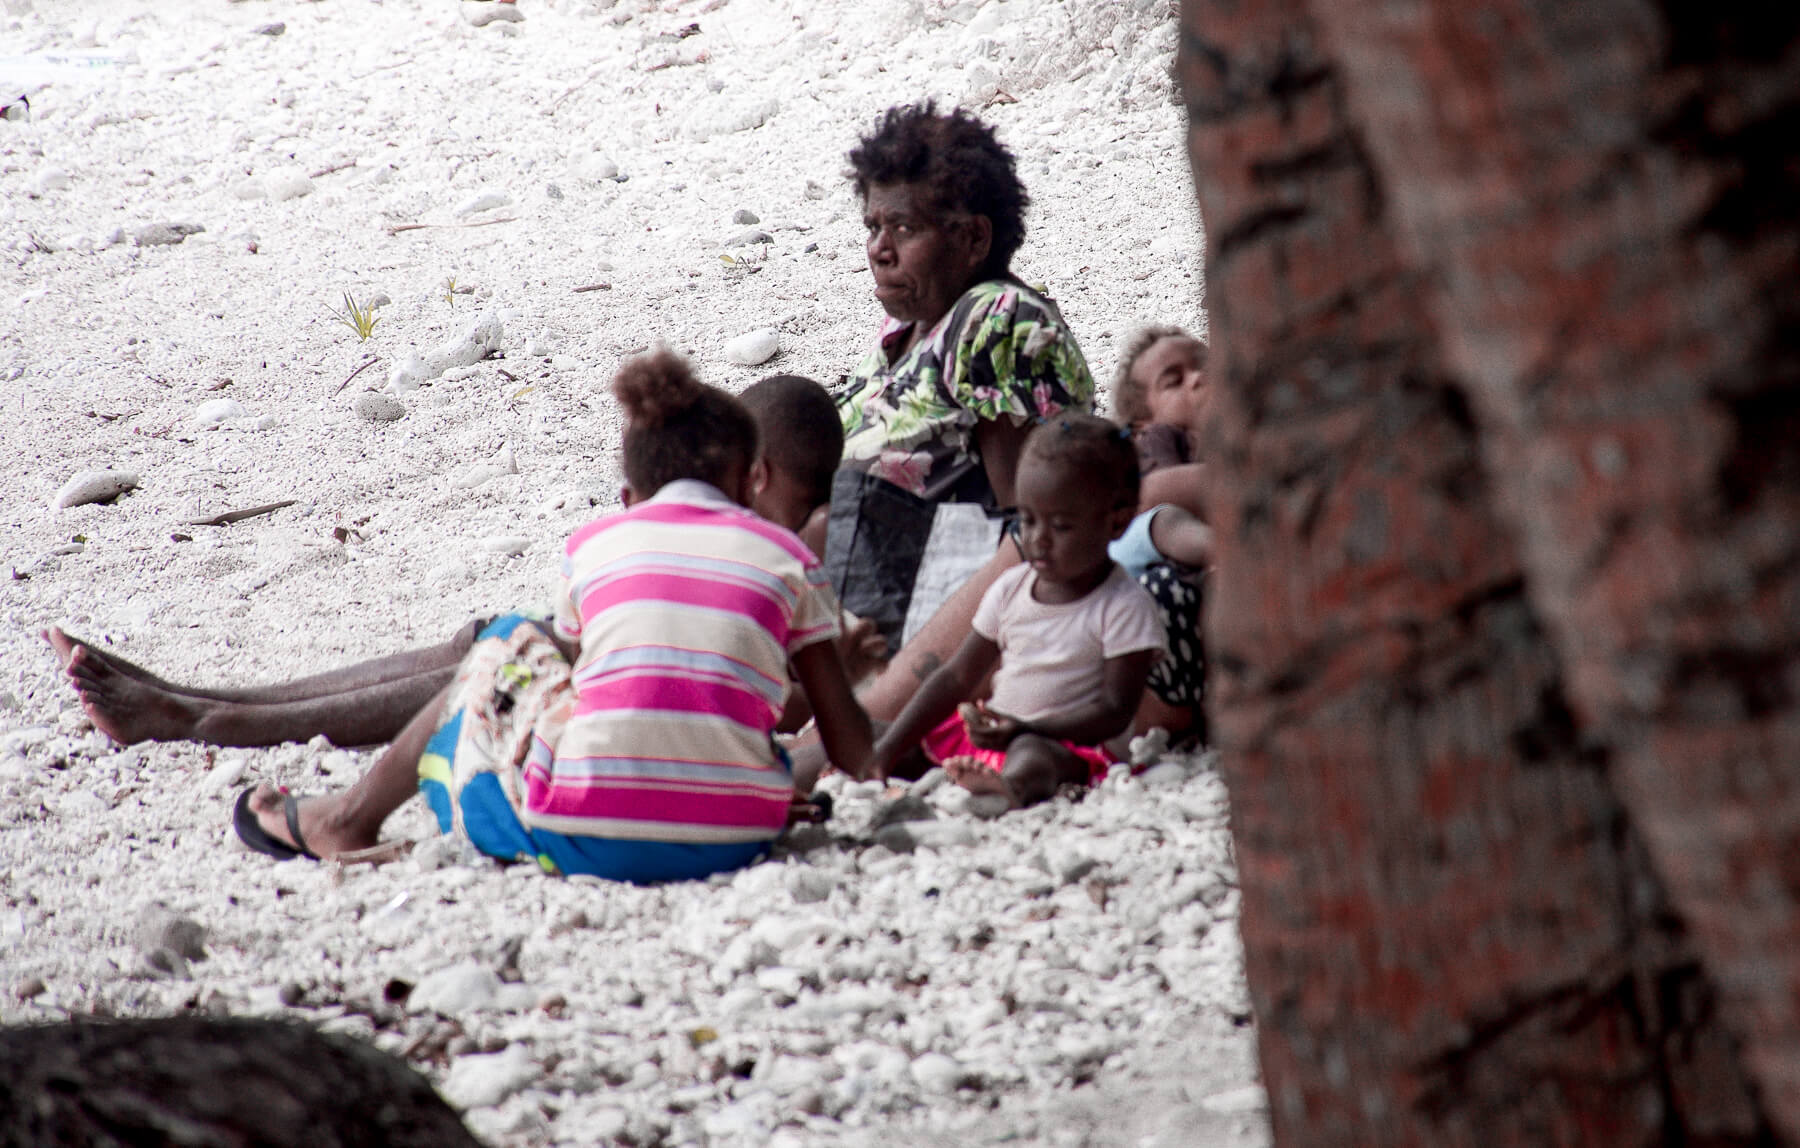 A local Vanuatu family (mother and 4 children) relaxing on the beach